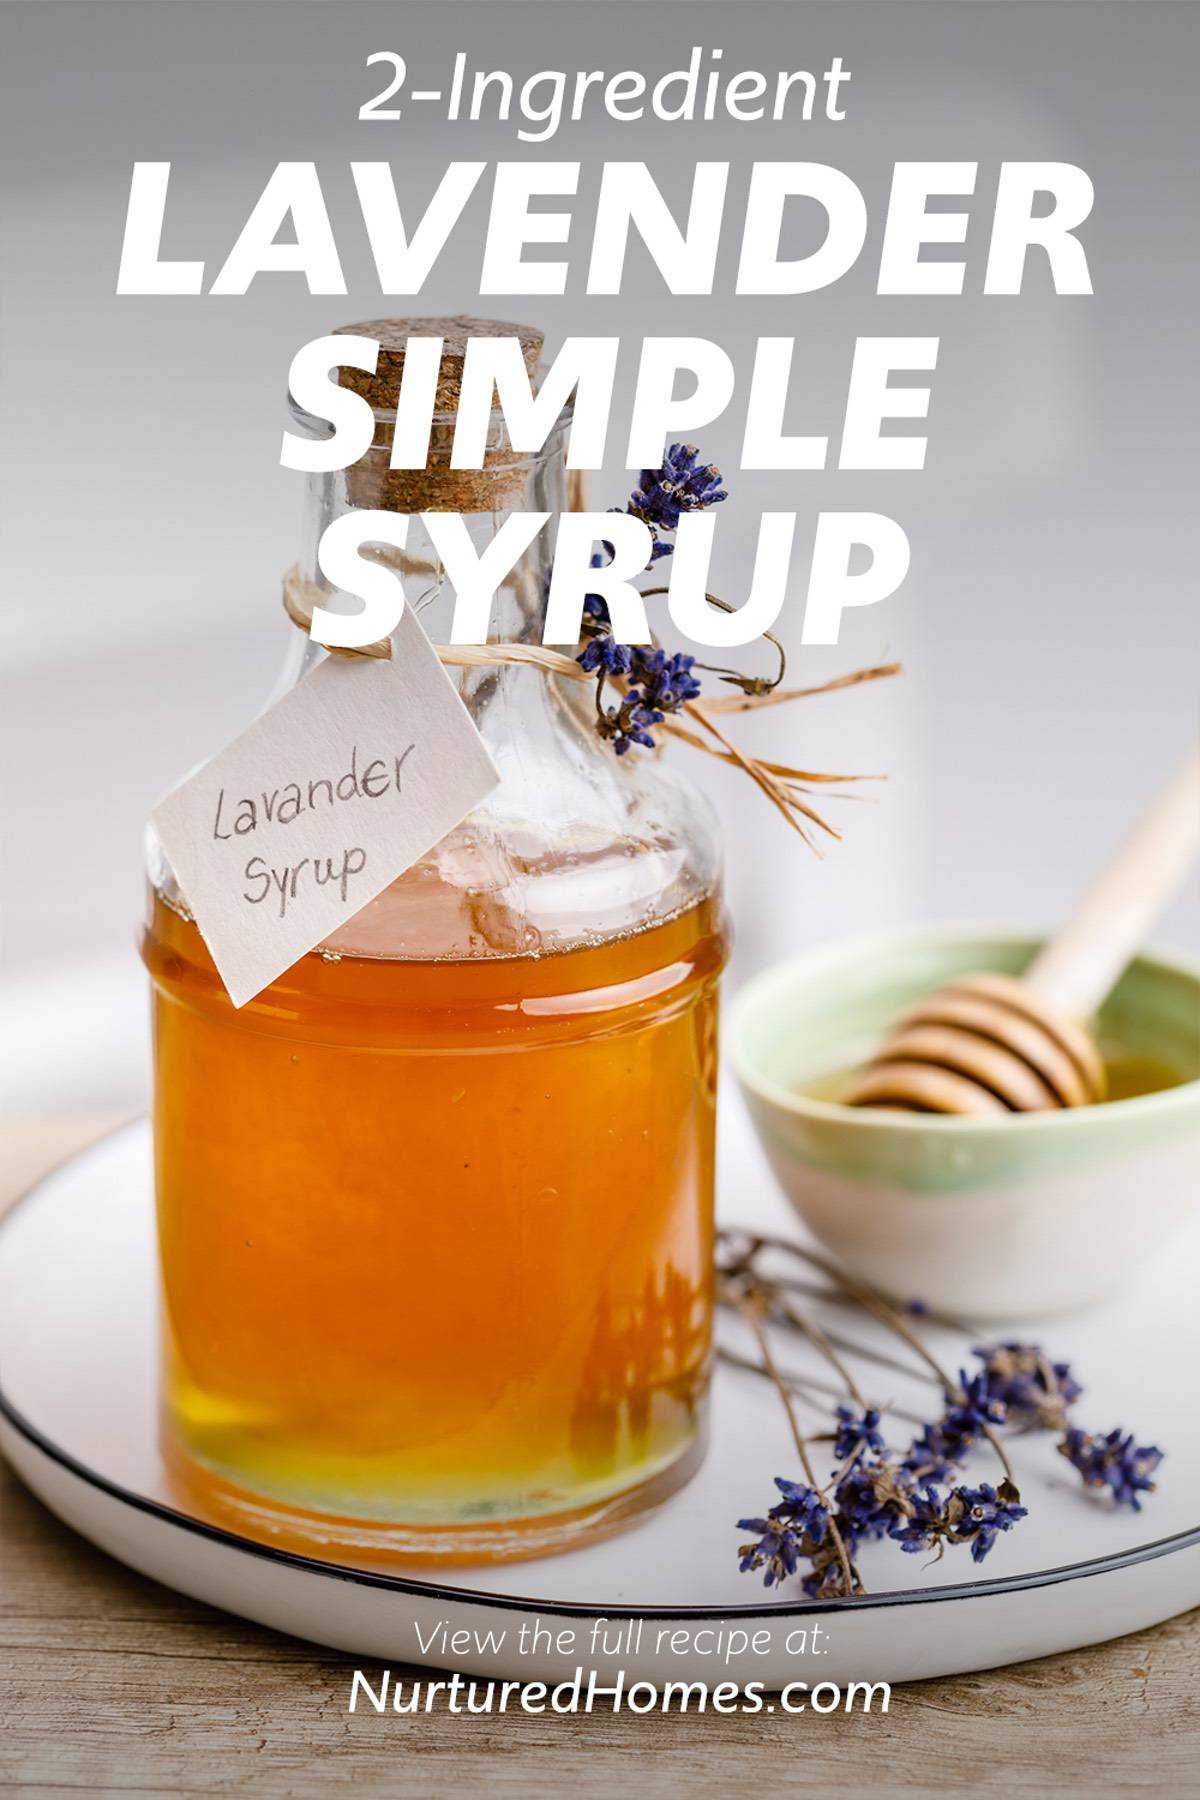 2-Ingredient Lavender Simple Syrup for Lemonade, Cocktails and Coffee